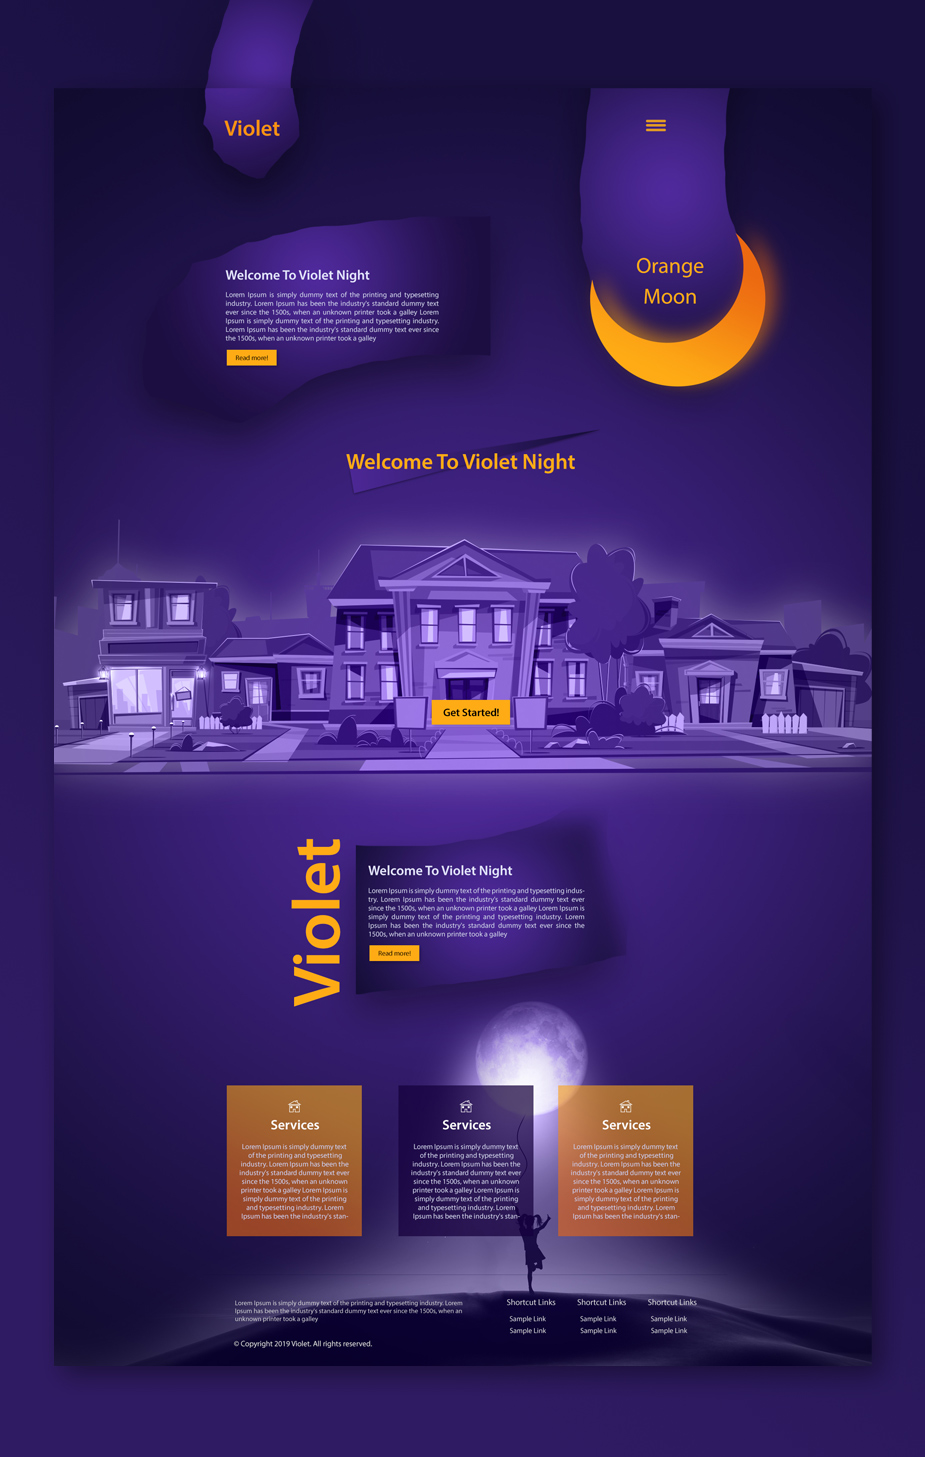 violet-night-website-design-waleed-sayed-ws